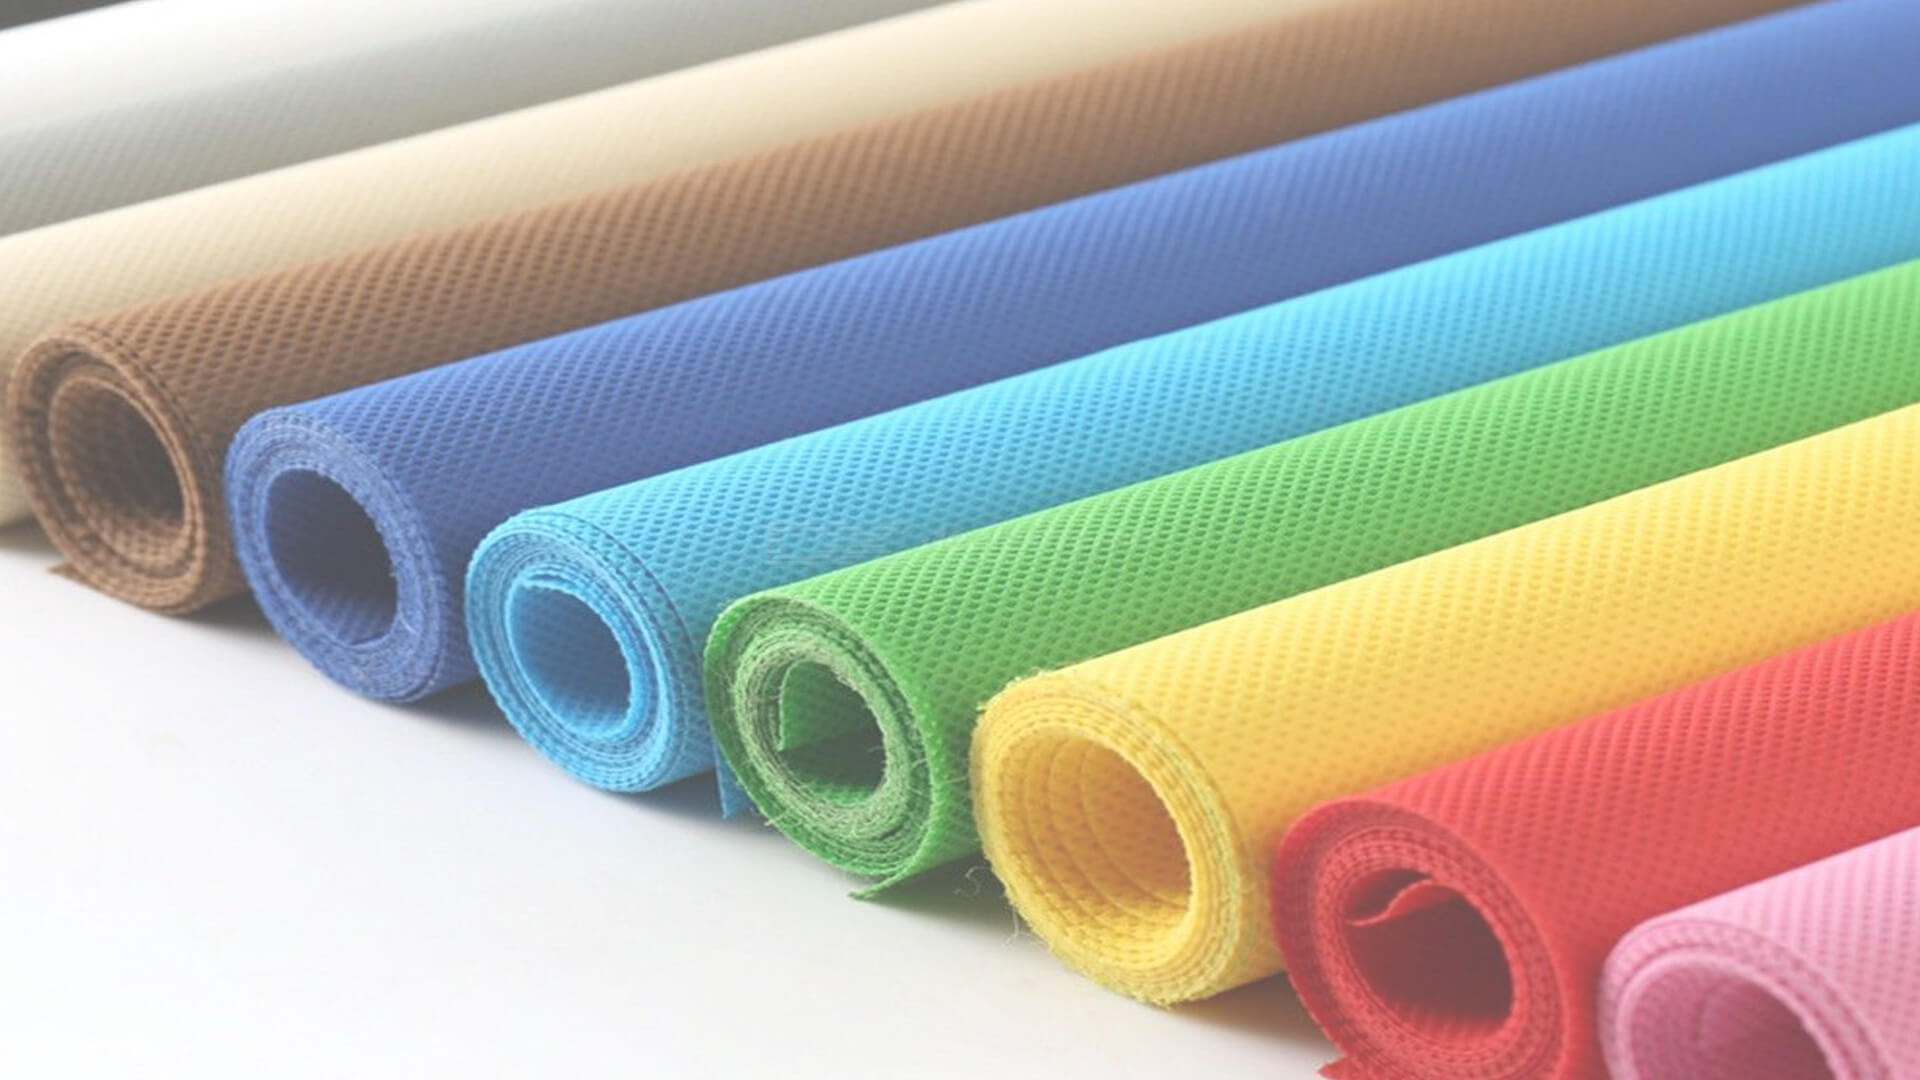 WHAT IS NON-WOVEN FABRICS